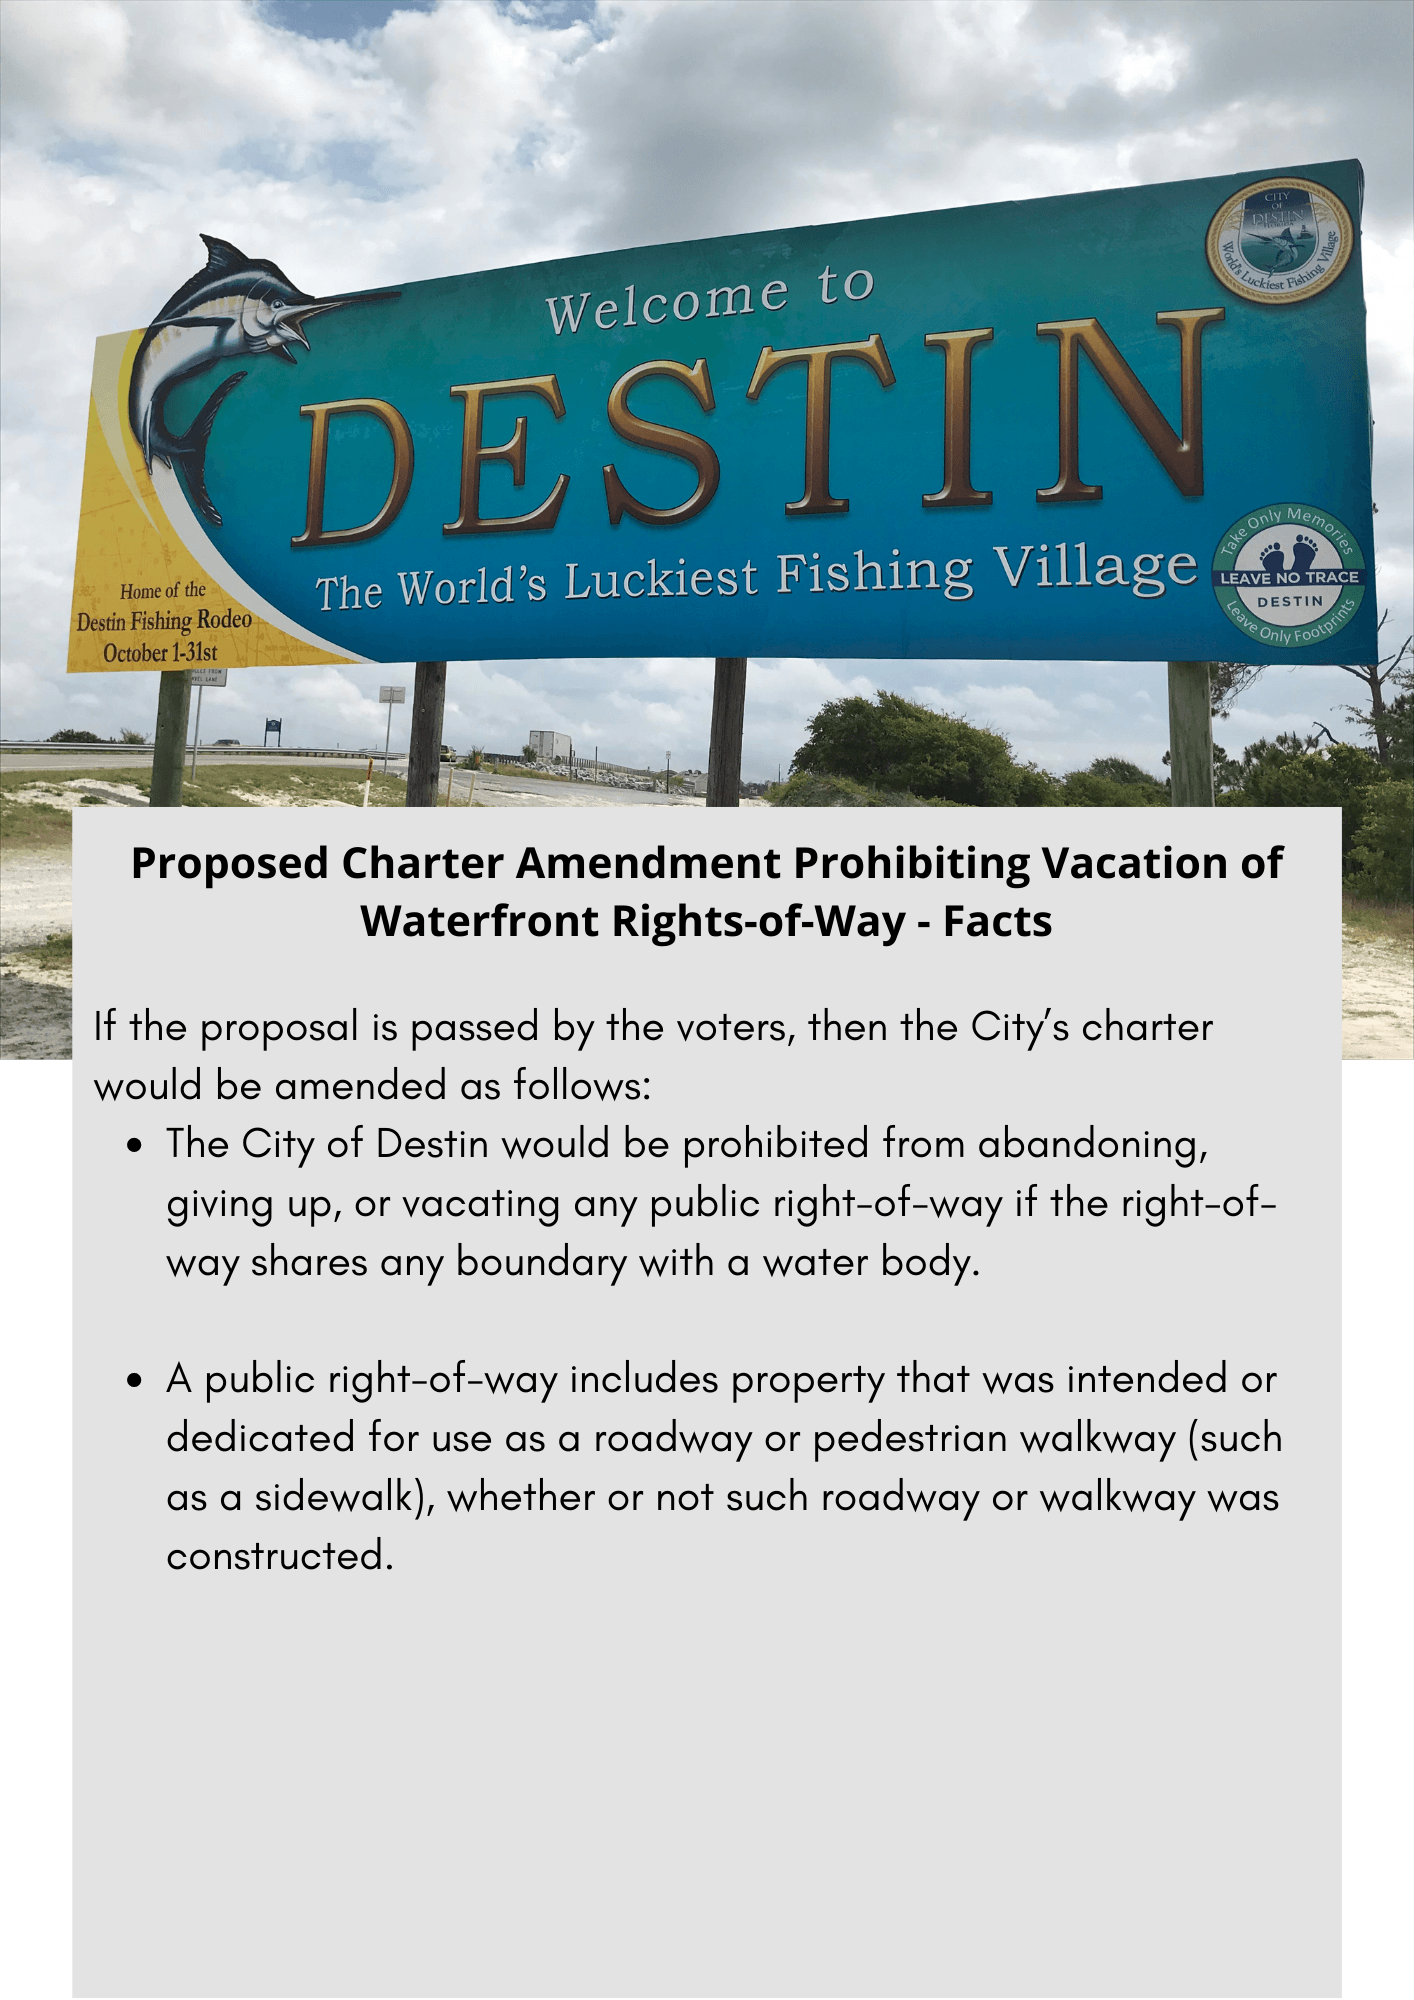 Proposed Charter Amendment Prohibiting Vacation of Waterfront Rights-of-Way - Facts